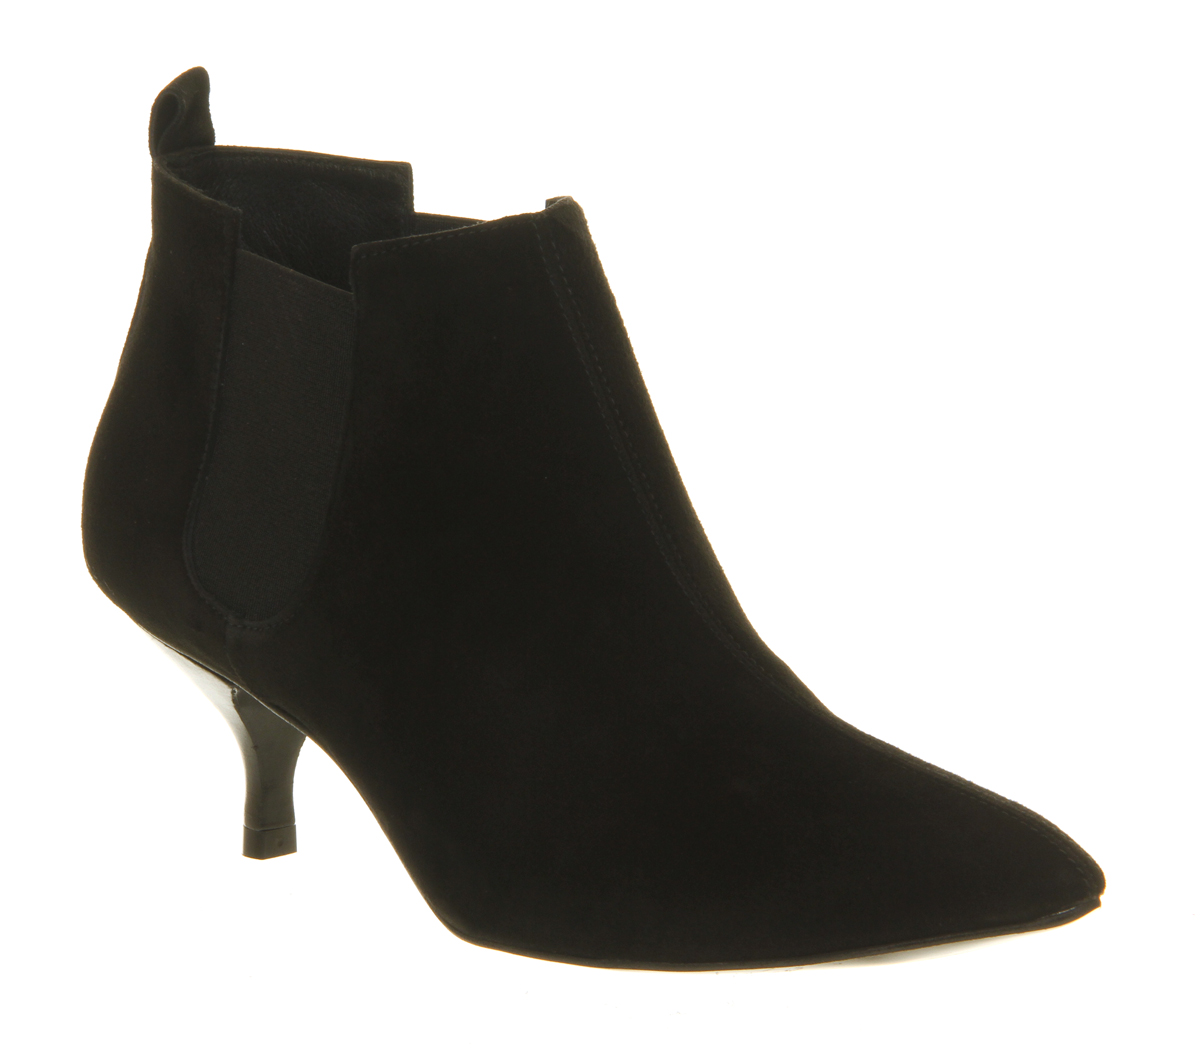 New 2 Zara Flat Plastic Chelsea Boot $100 Zaras Ankle Chelsea Boot Is Primarily Made Of Polyurethane With A 15inch Heel And Partially Hidden Elastic Panels 3 Jacflash Pointed Chelsea Boot $125 These Animal Friendly, Vegan Suede